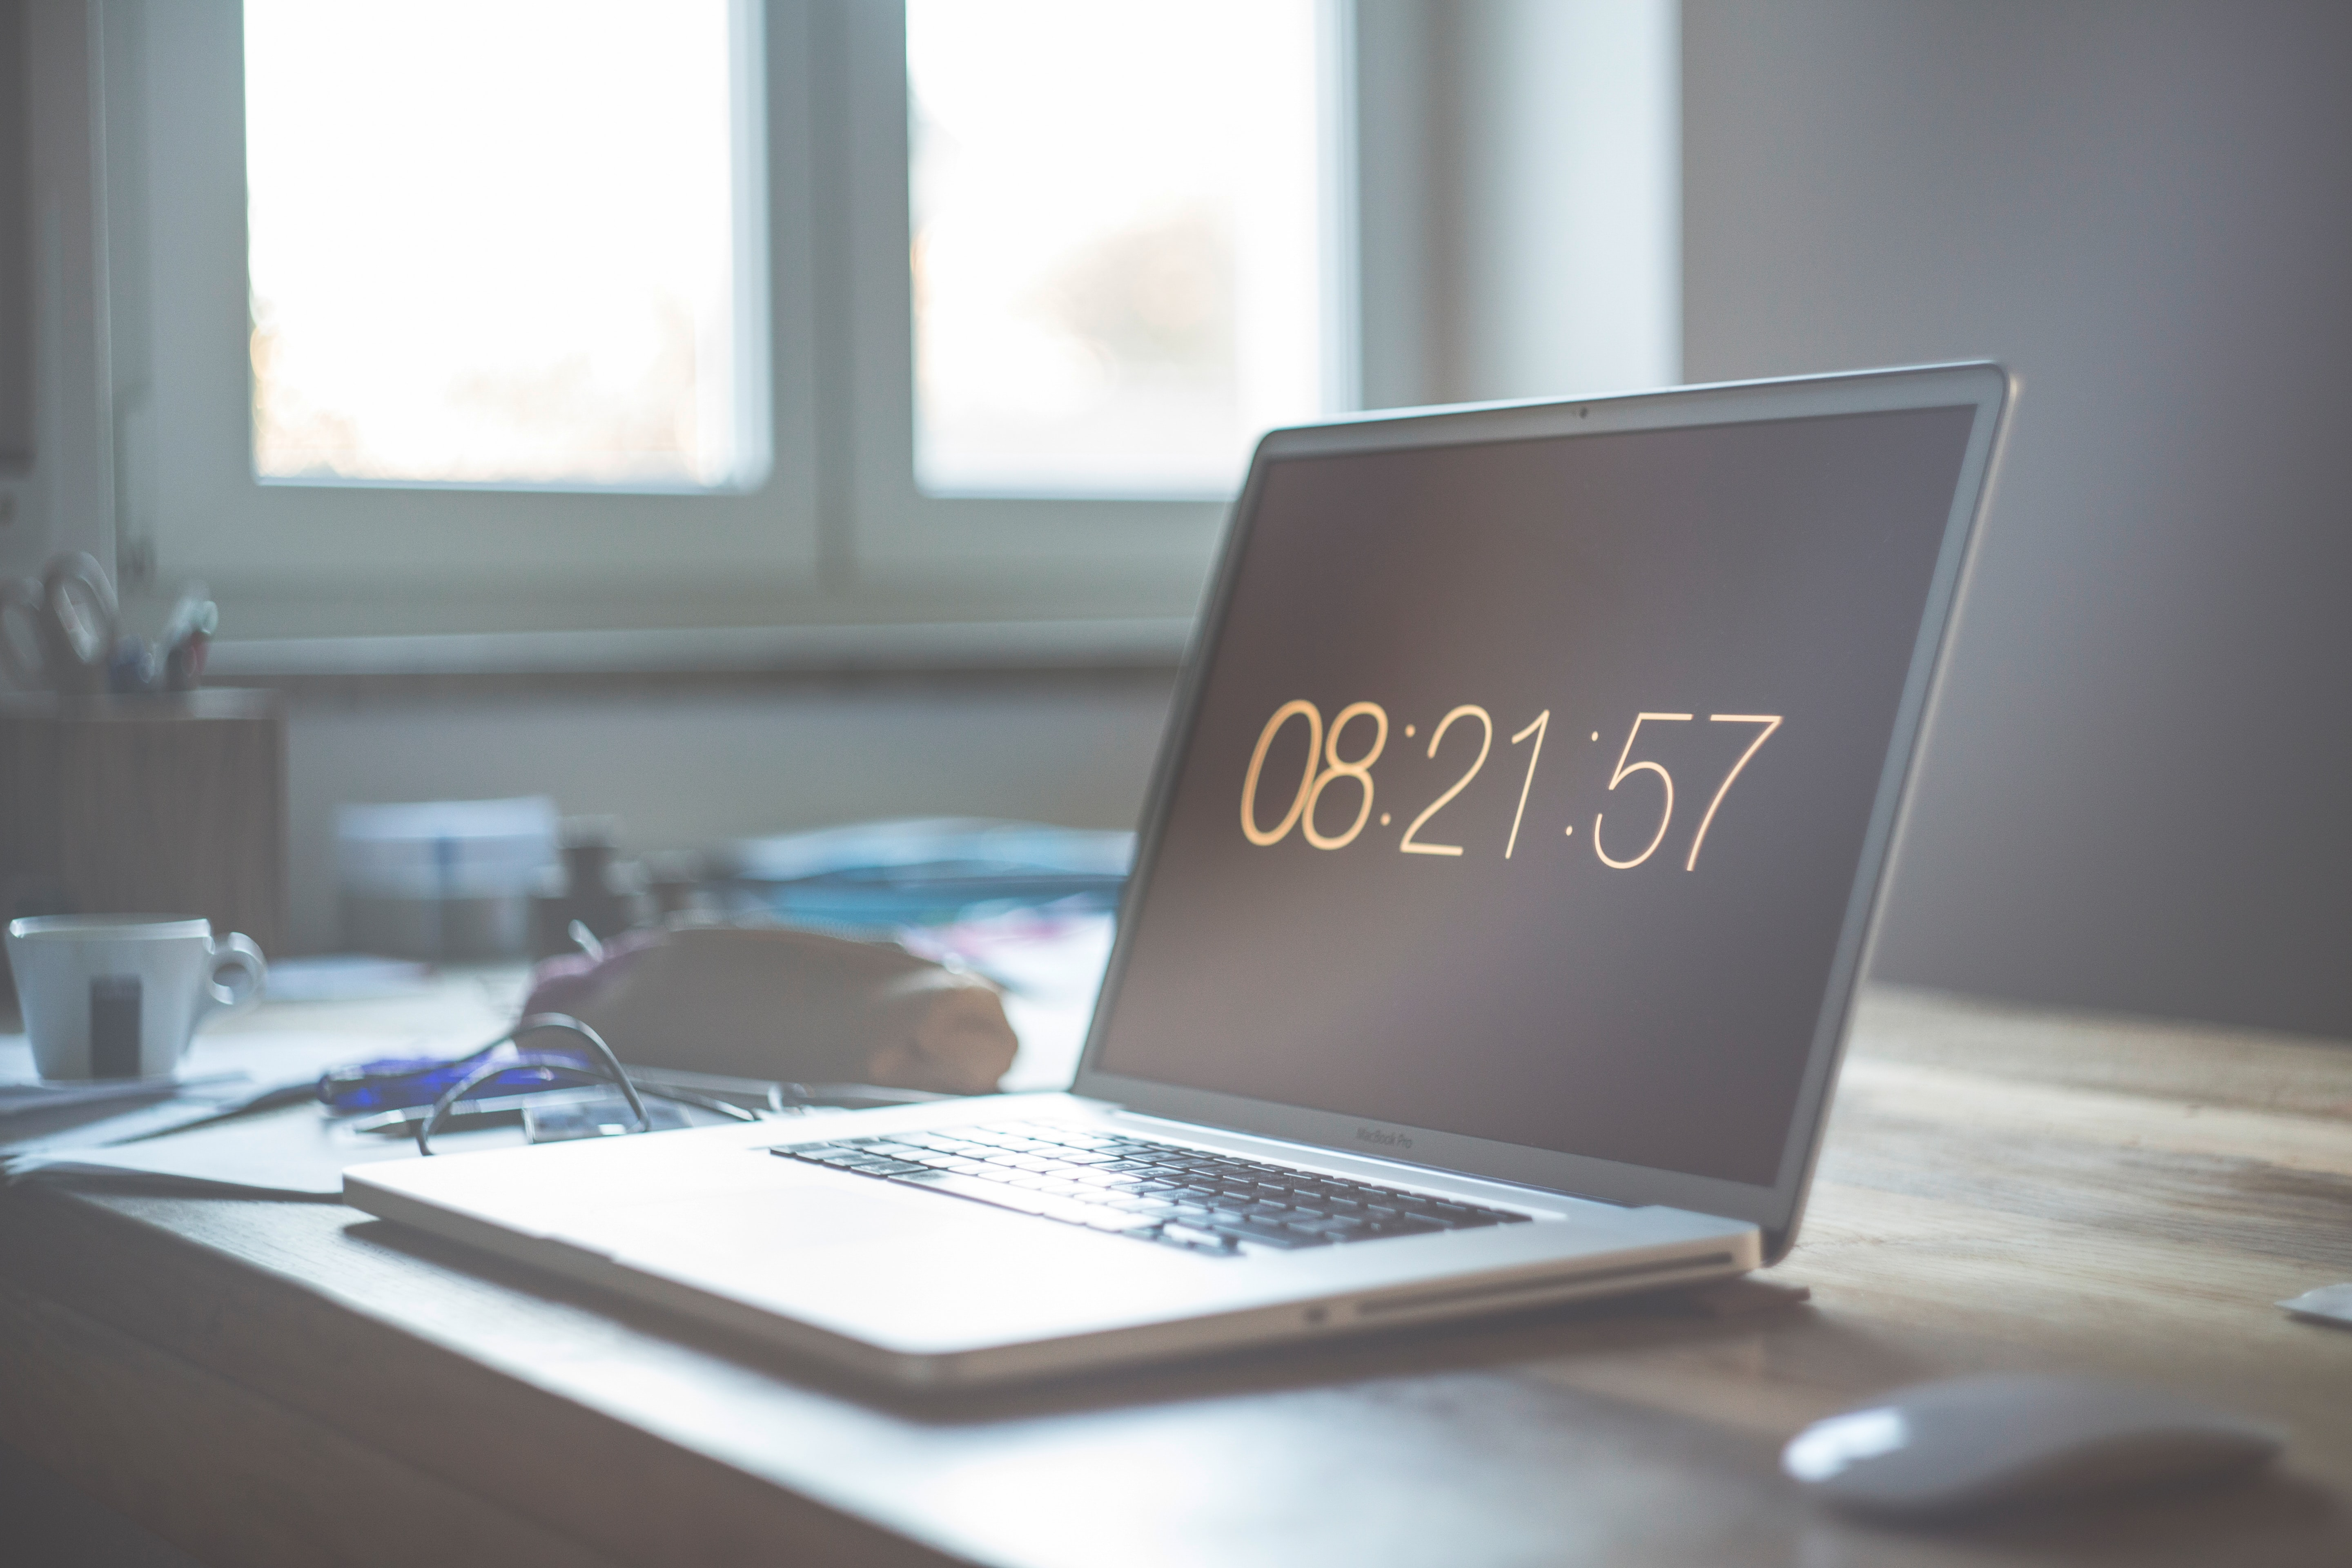 The time displayed on the dimmed screen of a MacBook on a messy desk